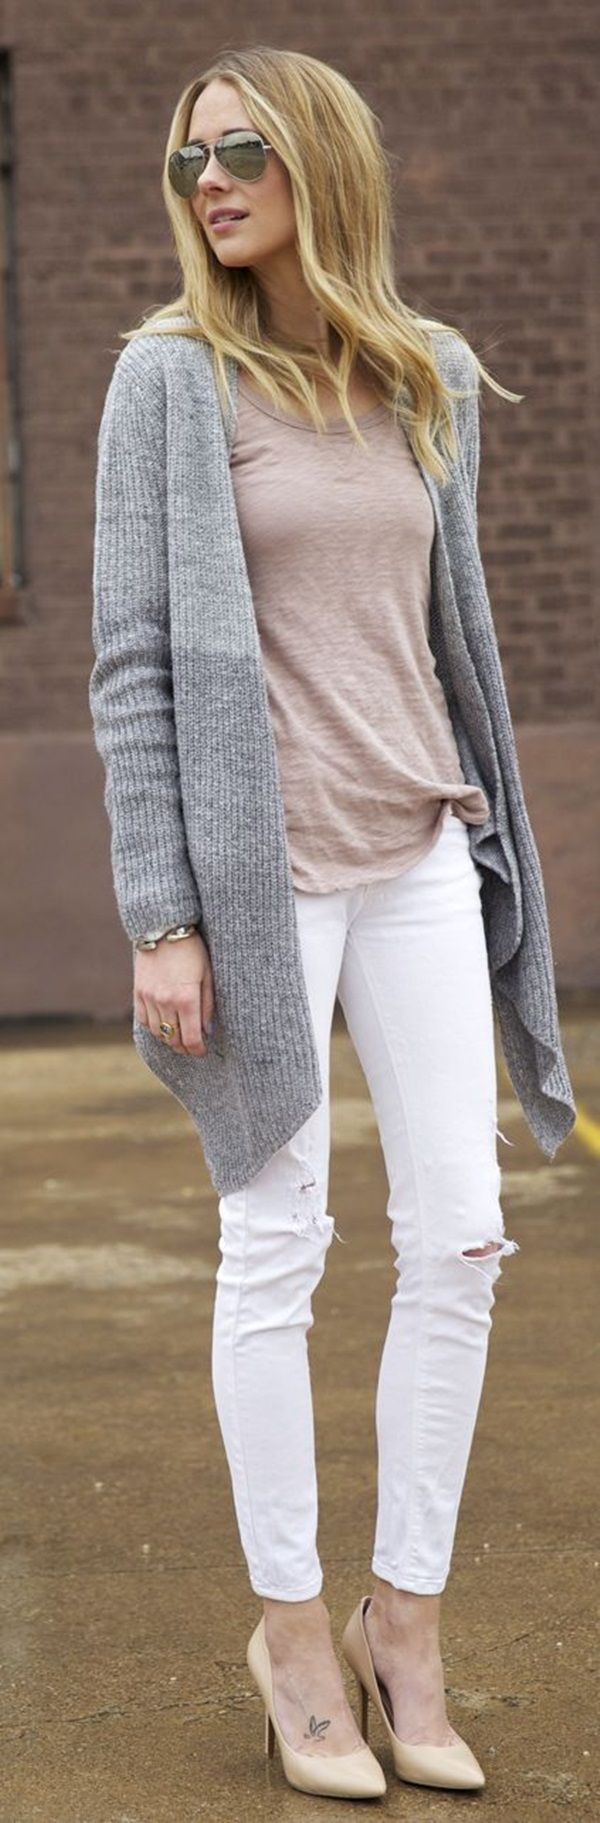 71 best images about style on Pinterest | Black jeans outfit ...